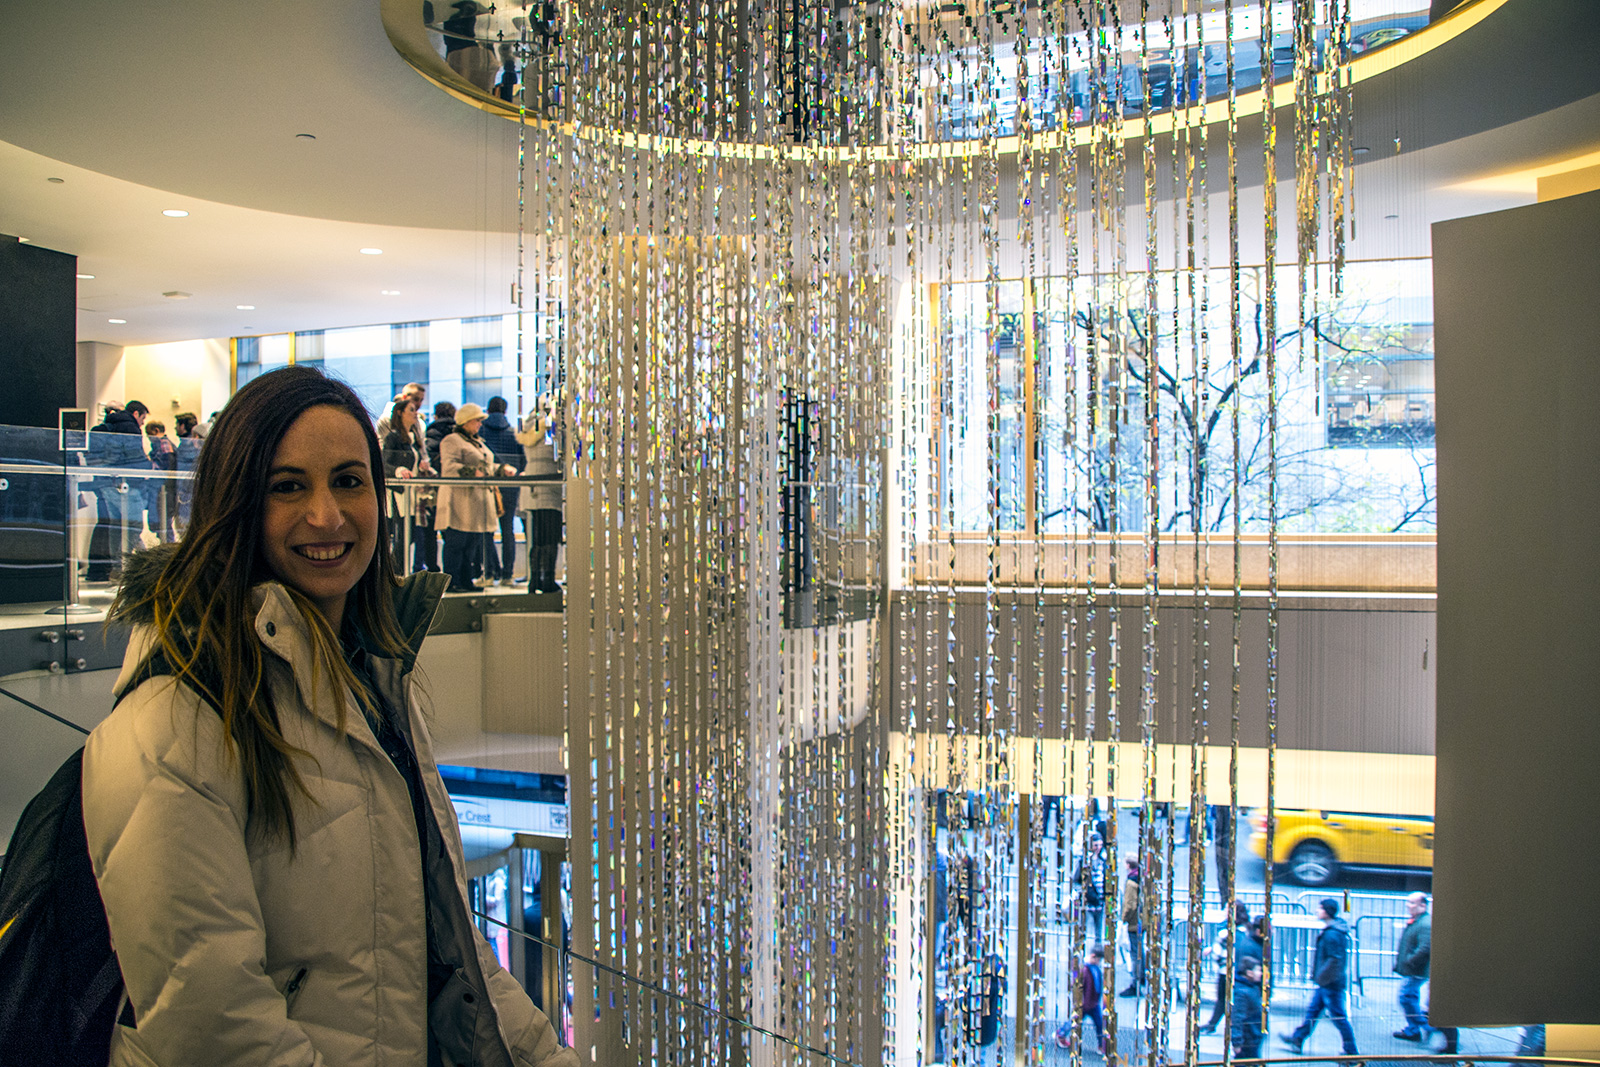 Cristales de Swarovski en el Top of the Rock - New York CityPass